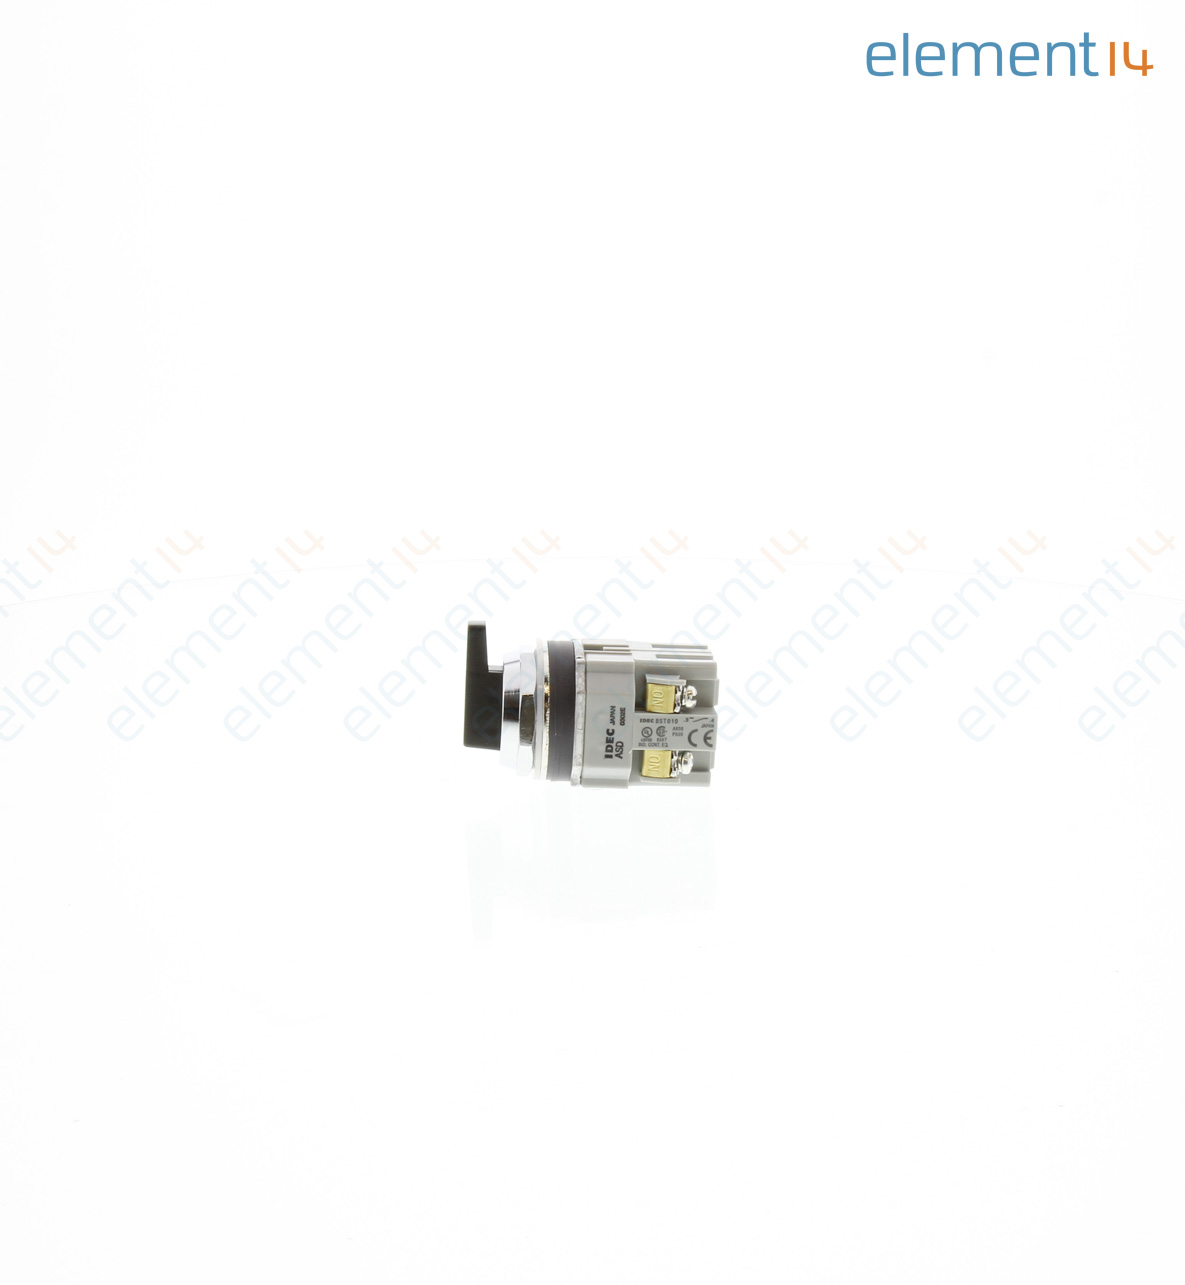 Asd3l20n Idec Rotary Switch 3 Position 2 Pole Dip Wiring Diagram Add To Compare